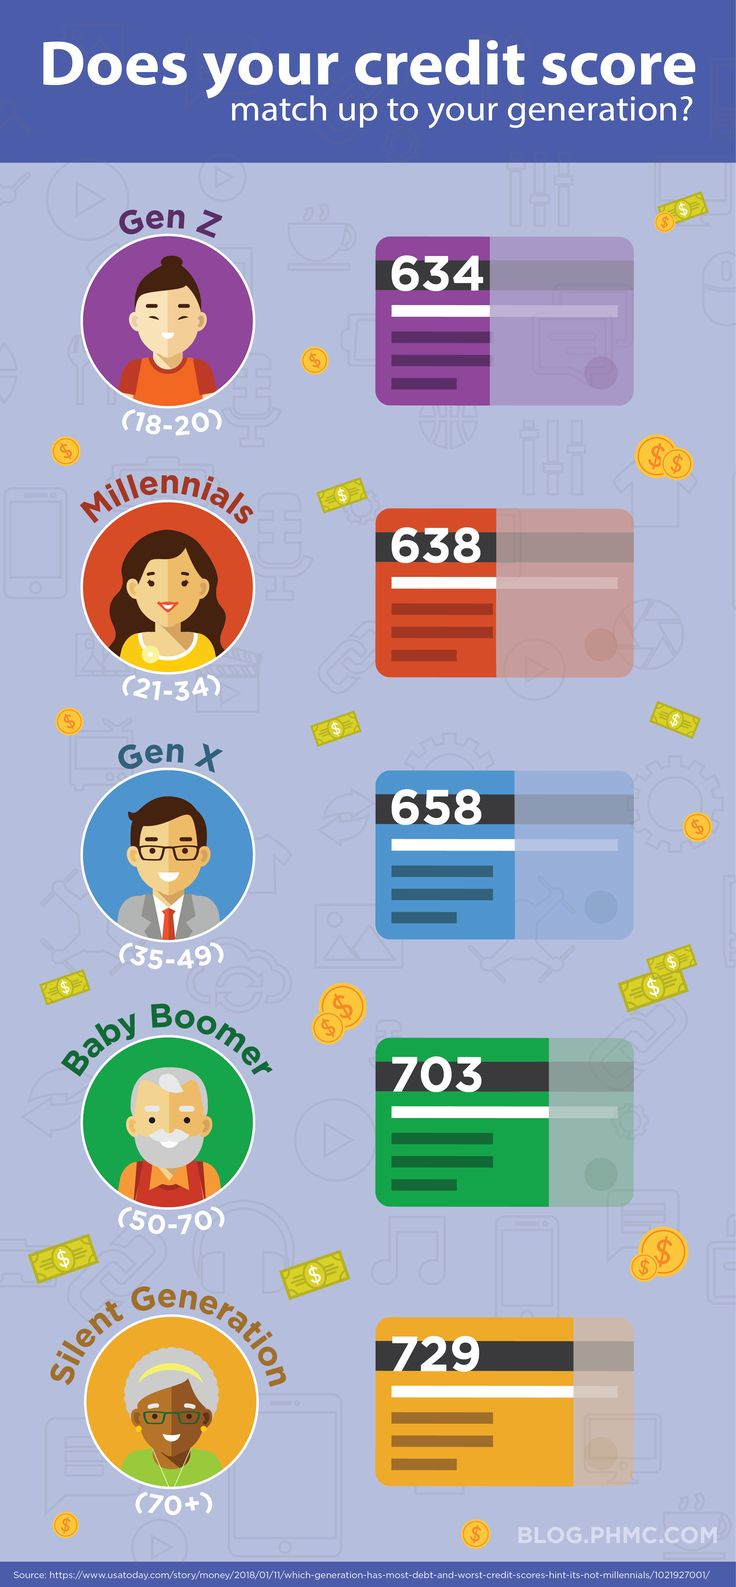 Does your credit score match up to your generation? | blog.phmc.com